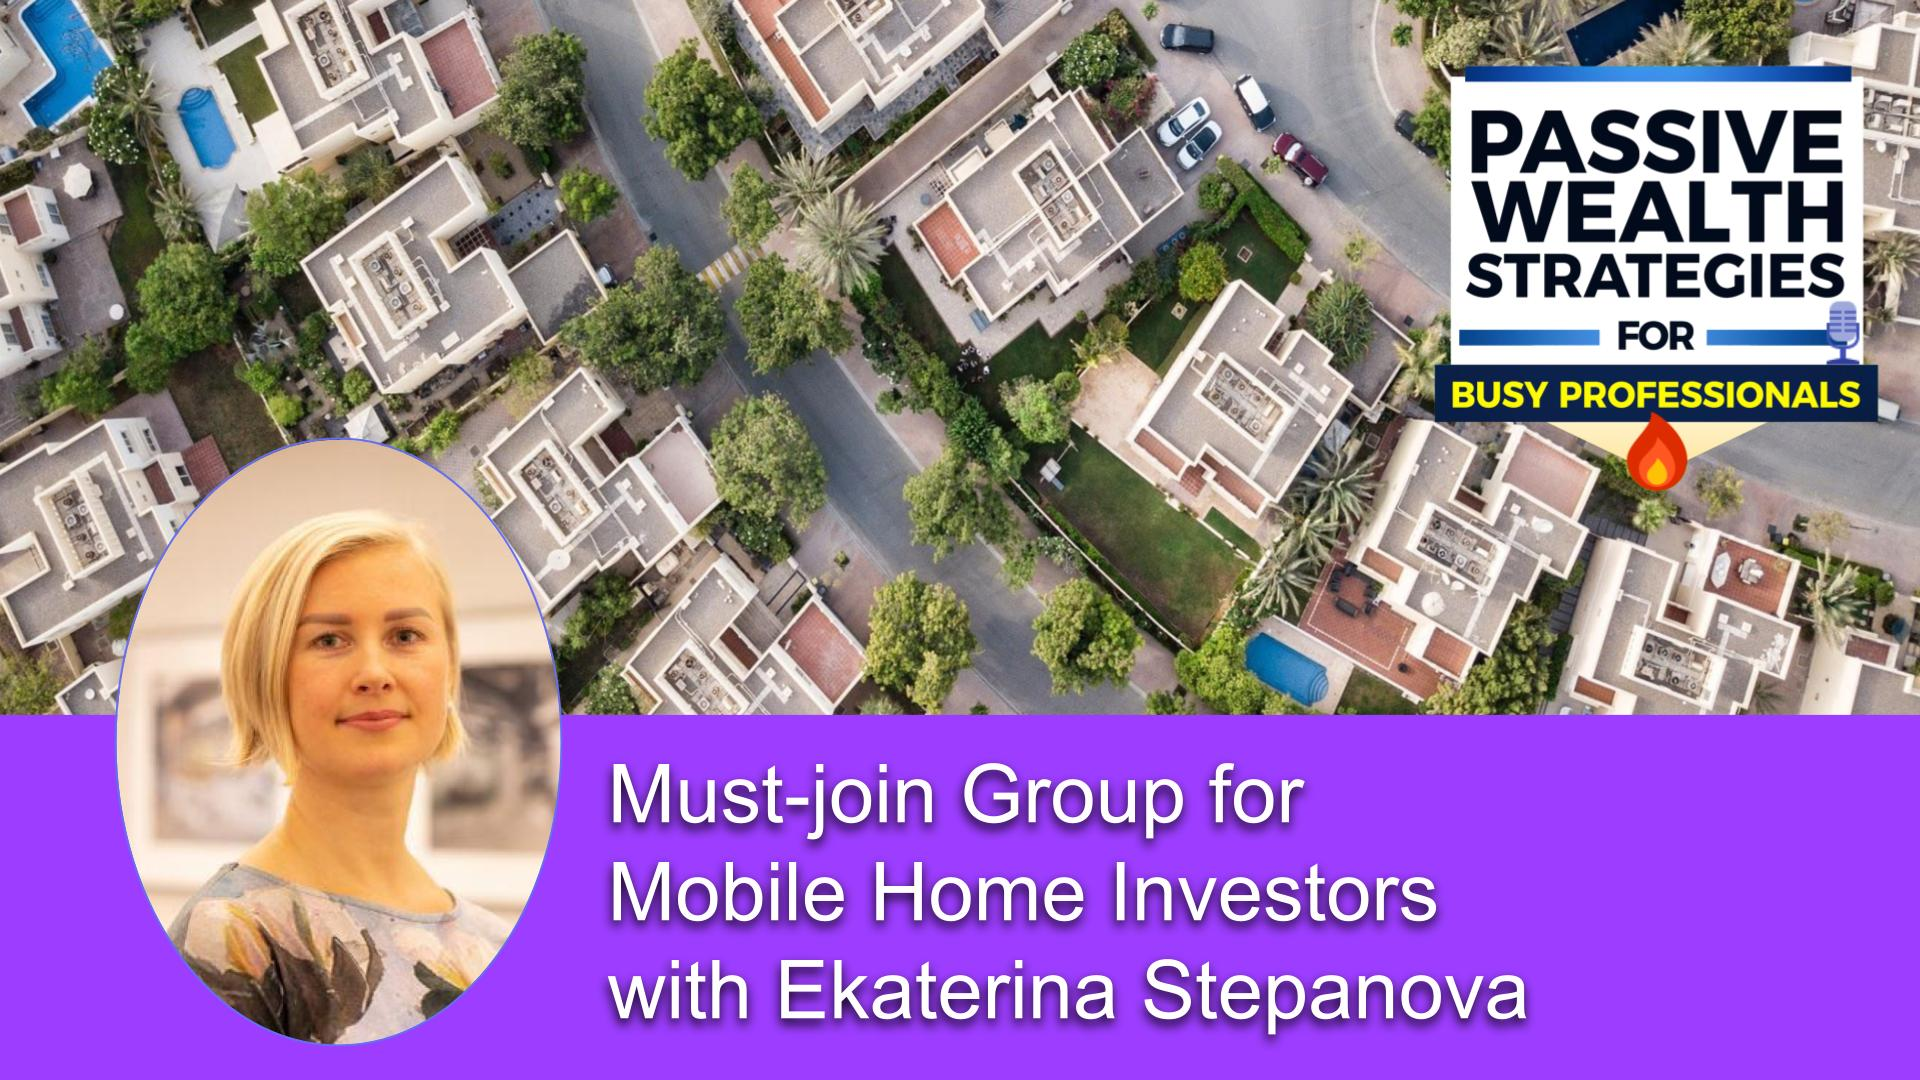 224 Must-join Group for Mobile Home Investors with Ekaterina Stepanova